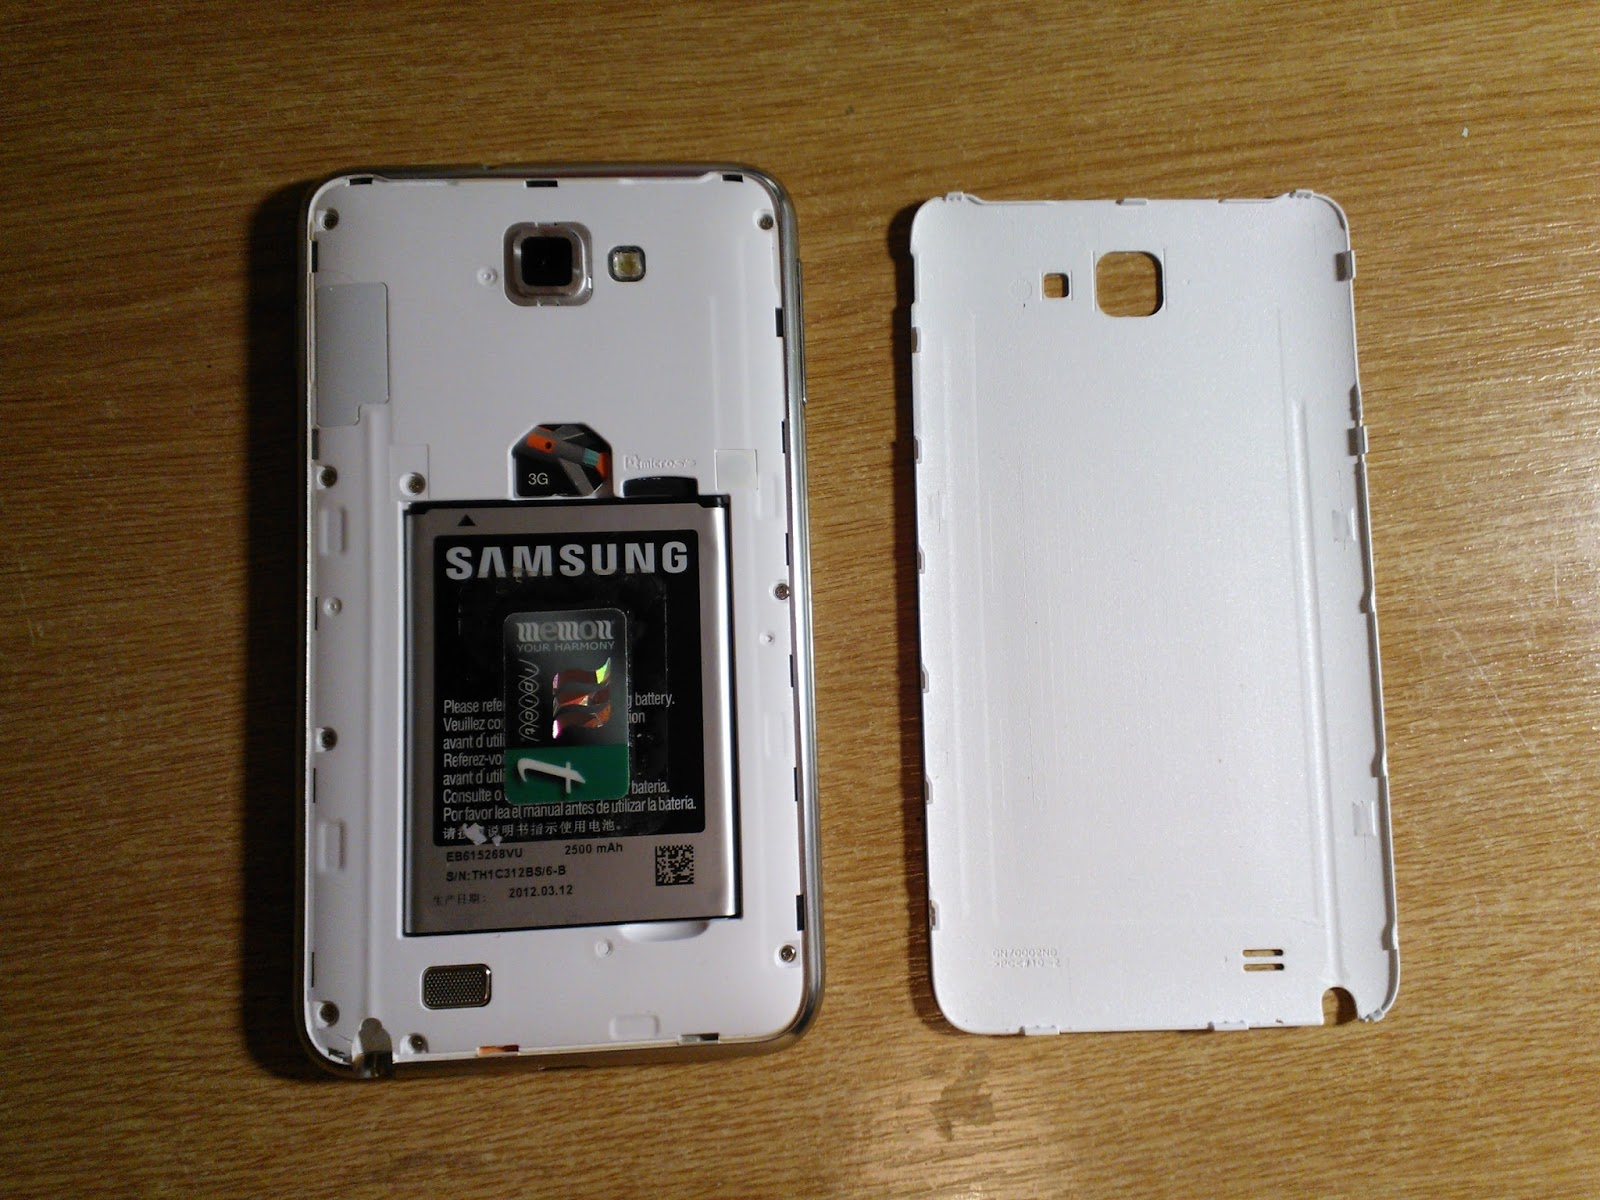 Samsung Galaxy Note 1 charging problems and repair